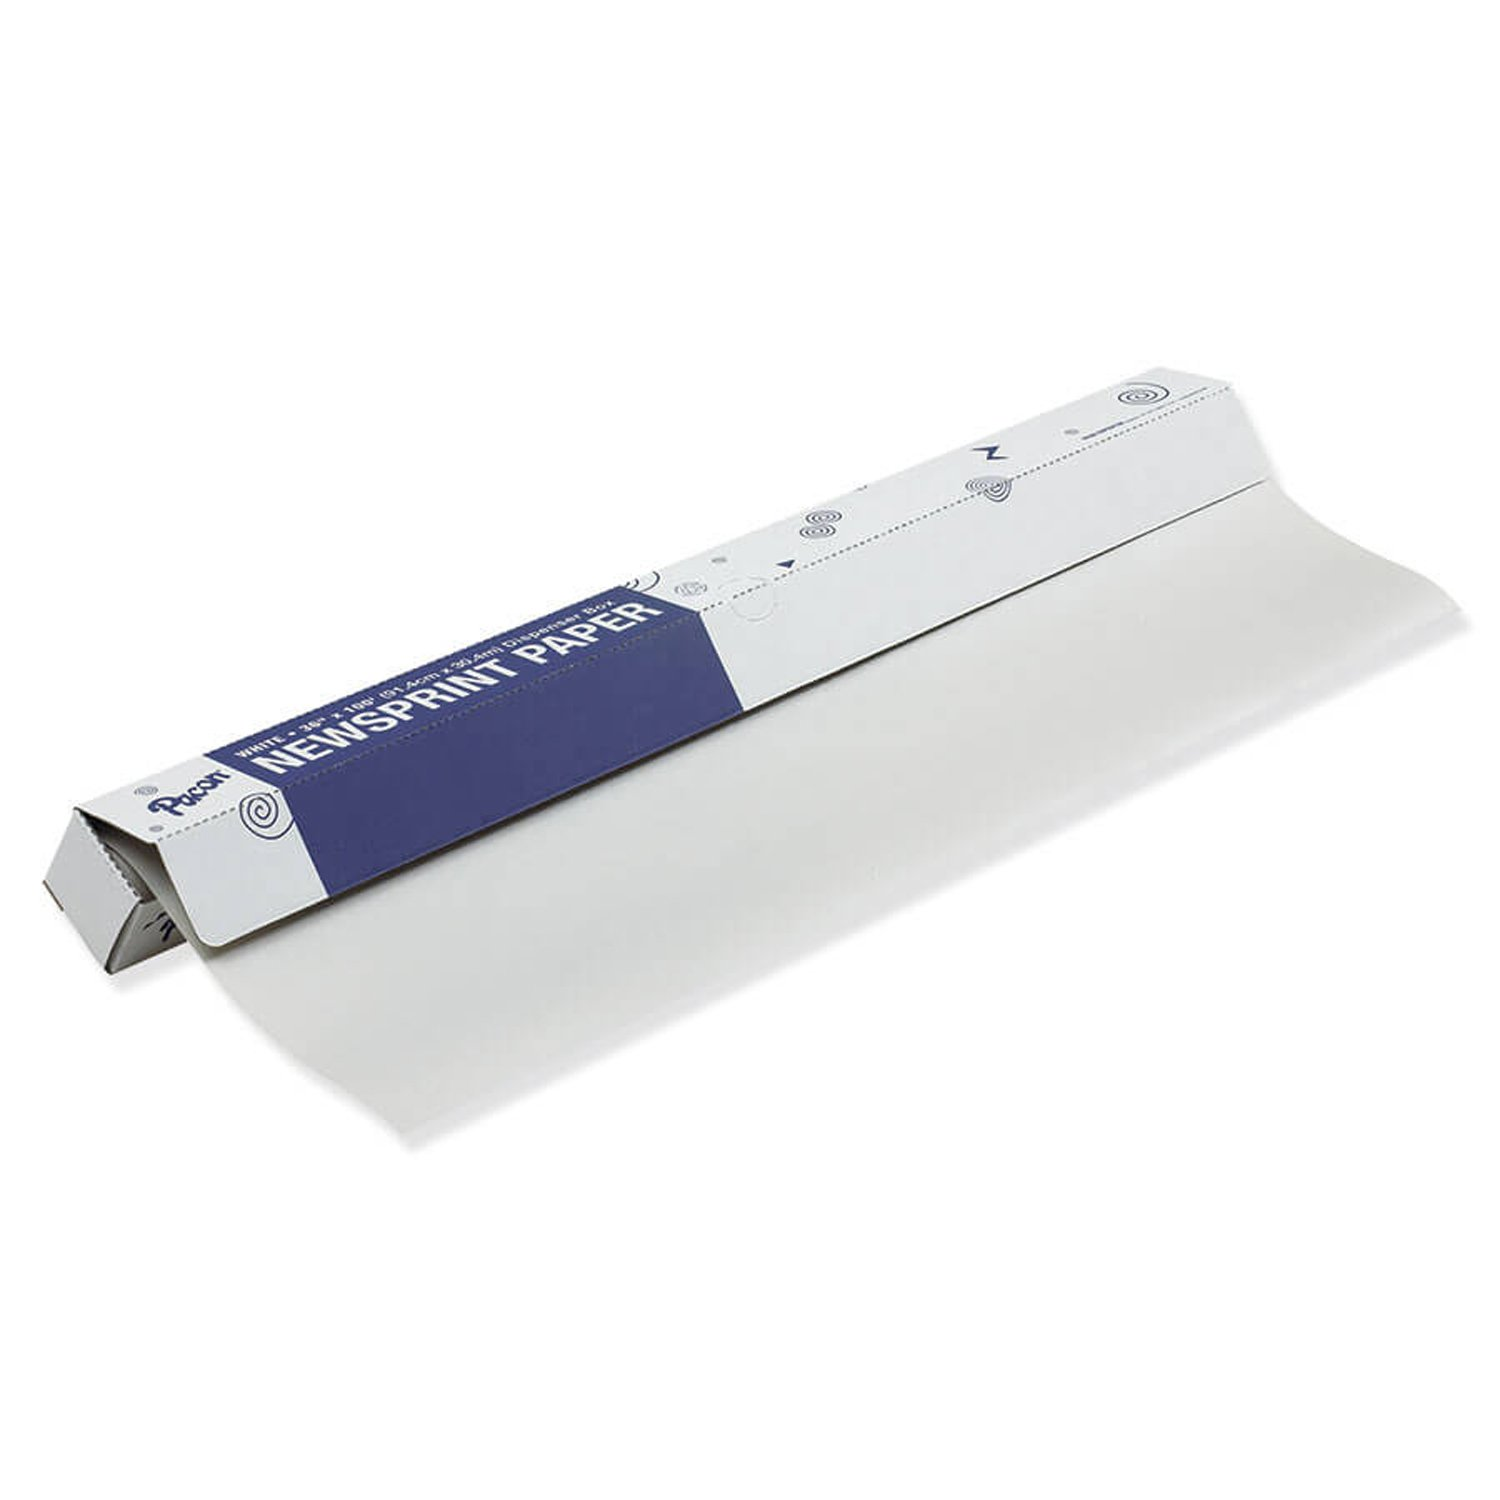 Pacon PAC66401 Newsprint Roll, 36'' x 100', White by PACON